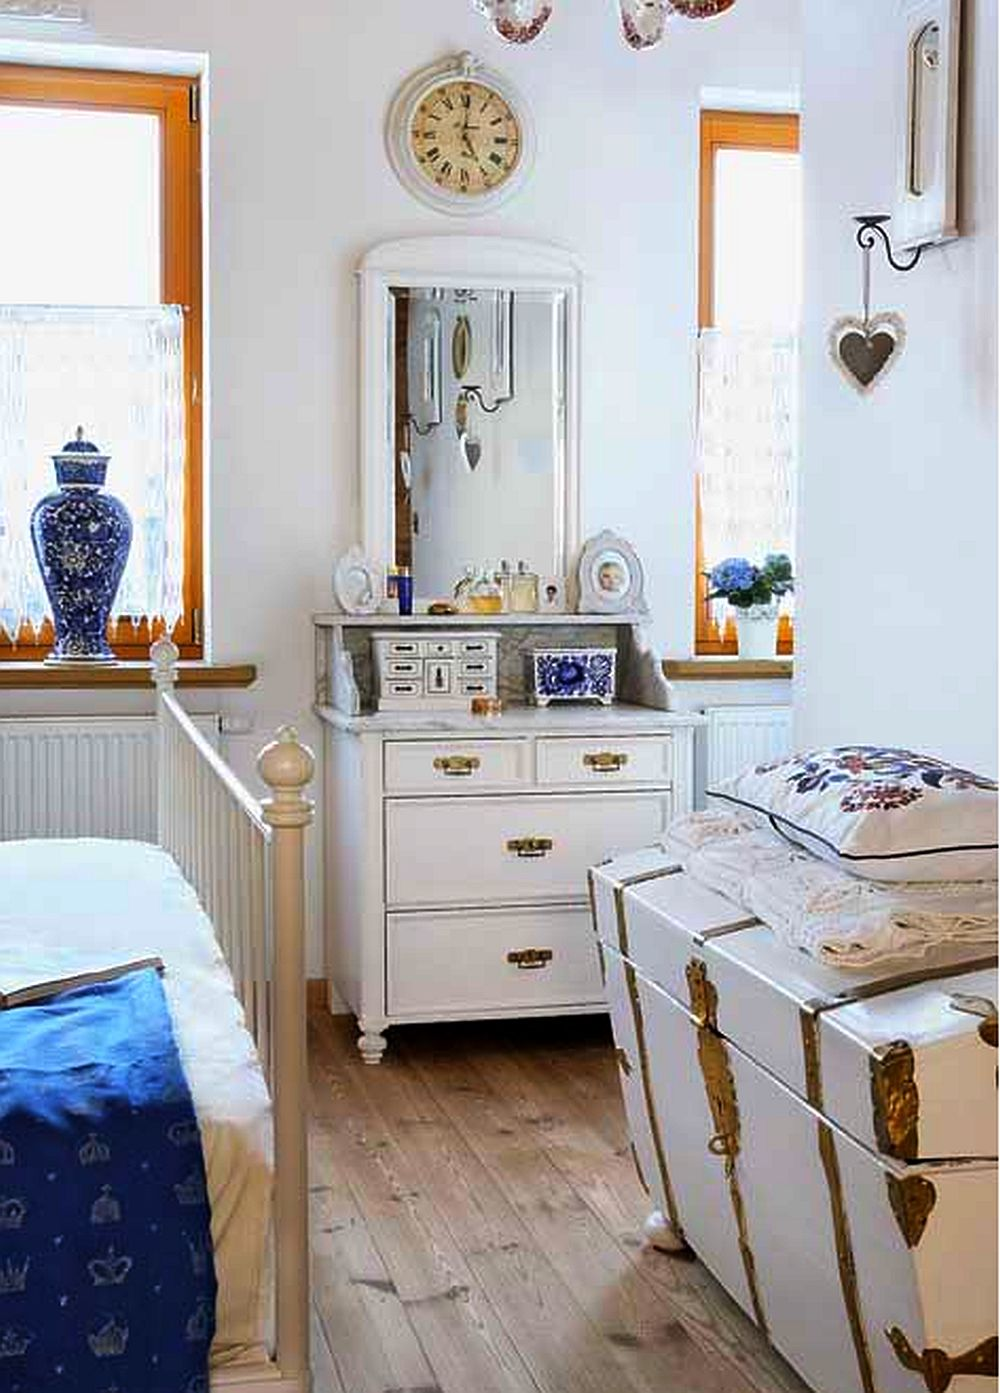 adelaparvu.com about rustic house in white and blue Photo Aneta Tryczynska(12)